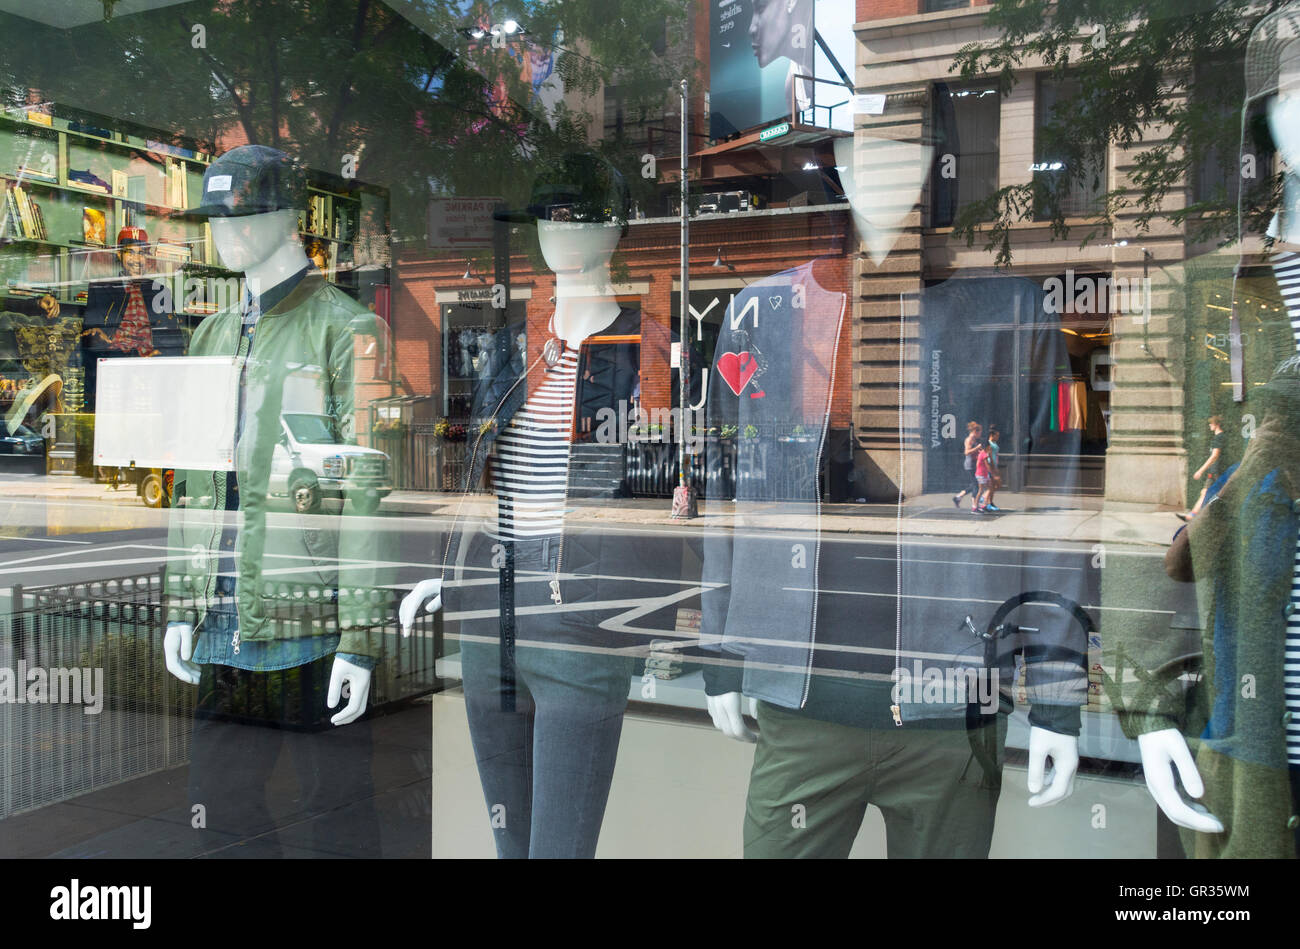 Street life reflected in the window of a men's fashion store in New York City - Stock Image